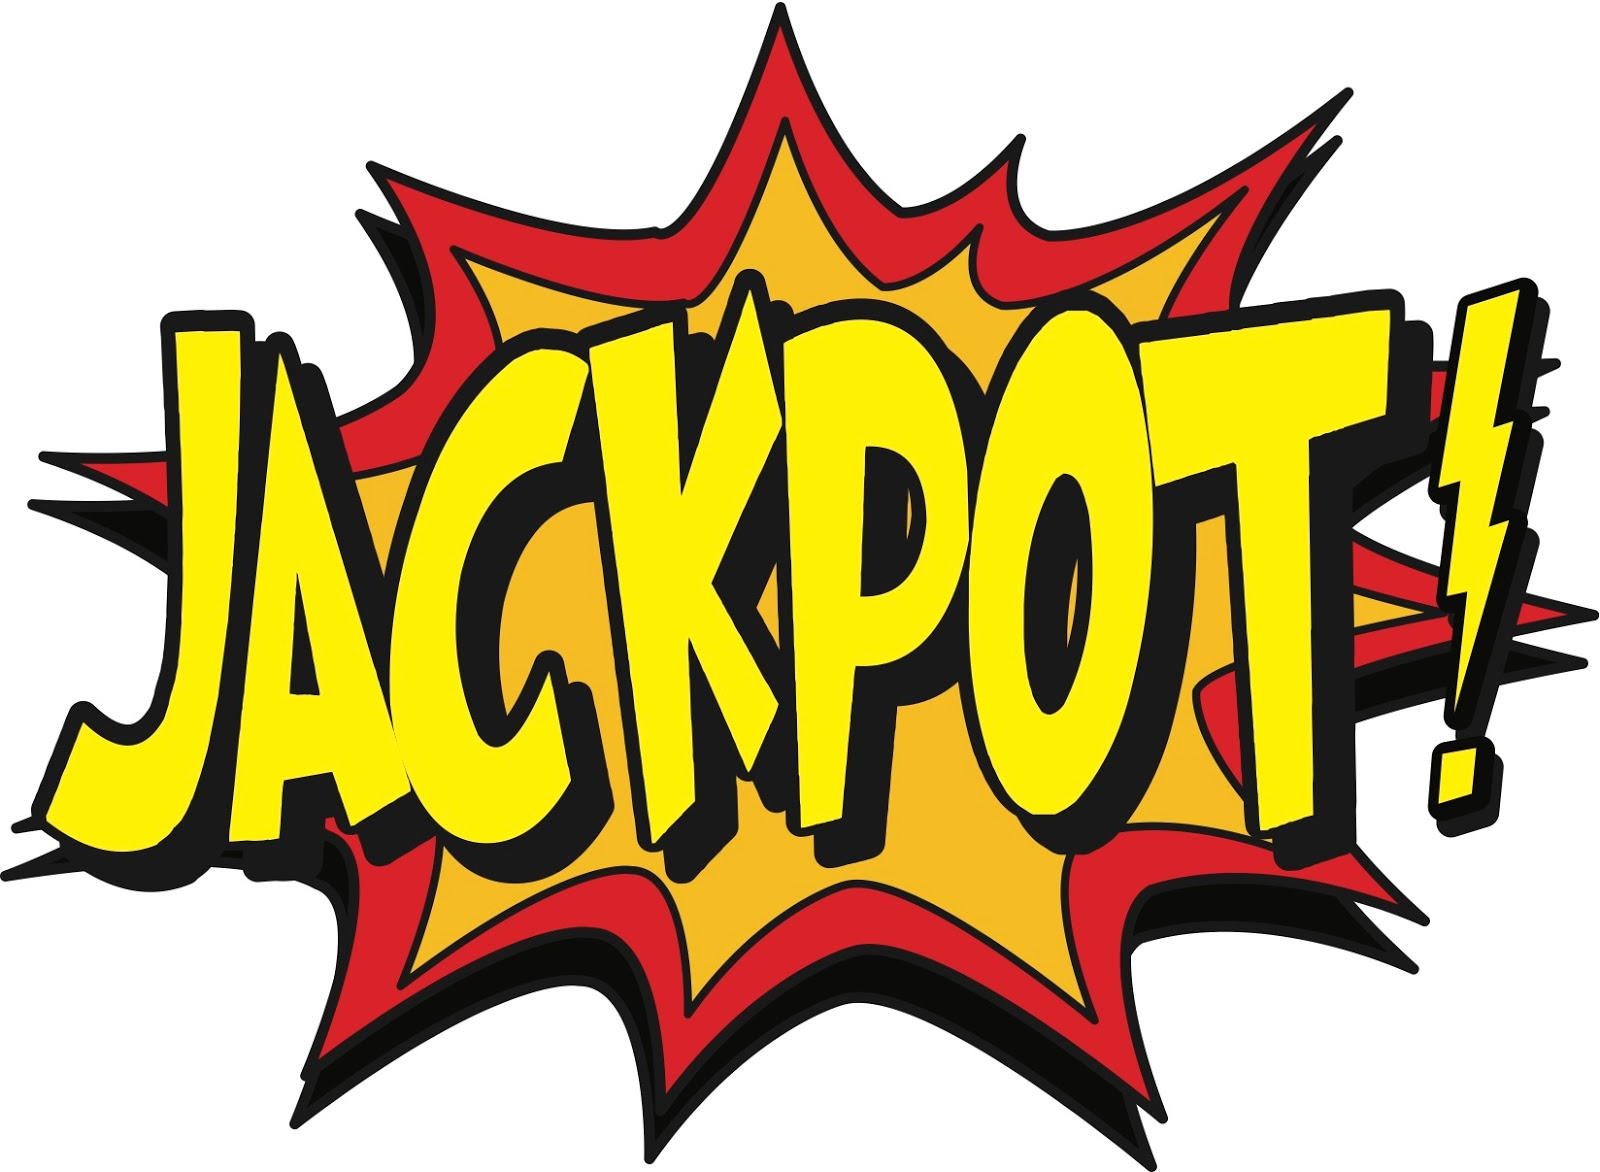 lotto jack pot